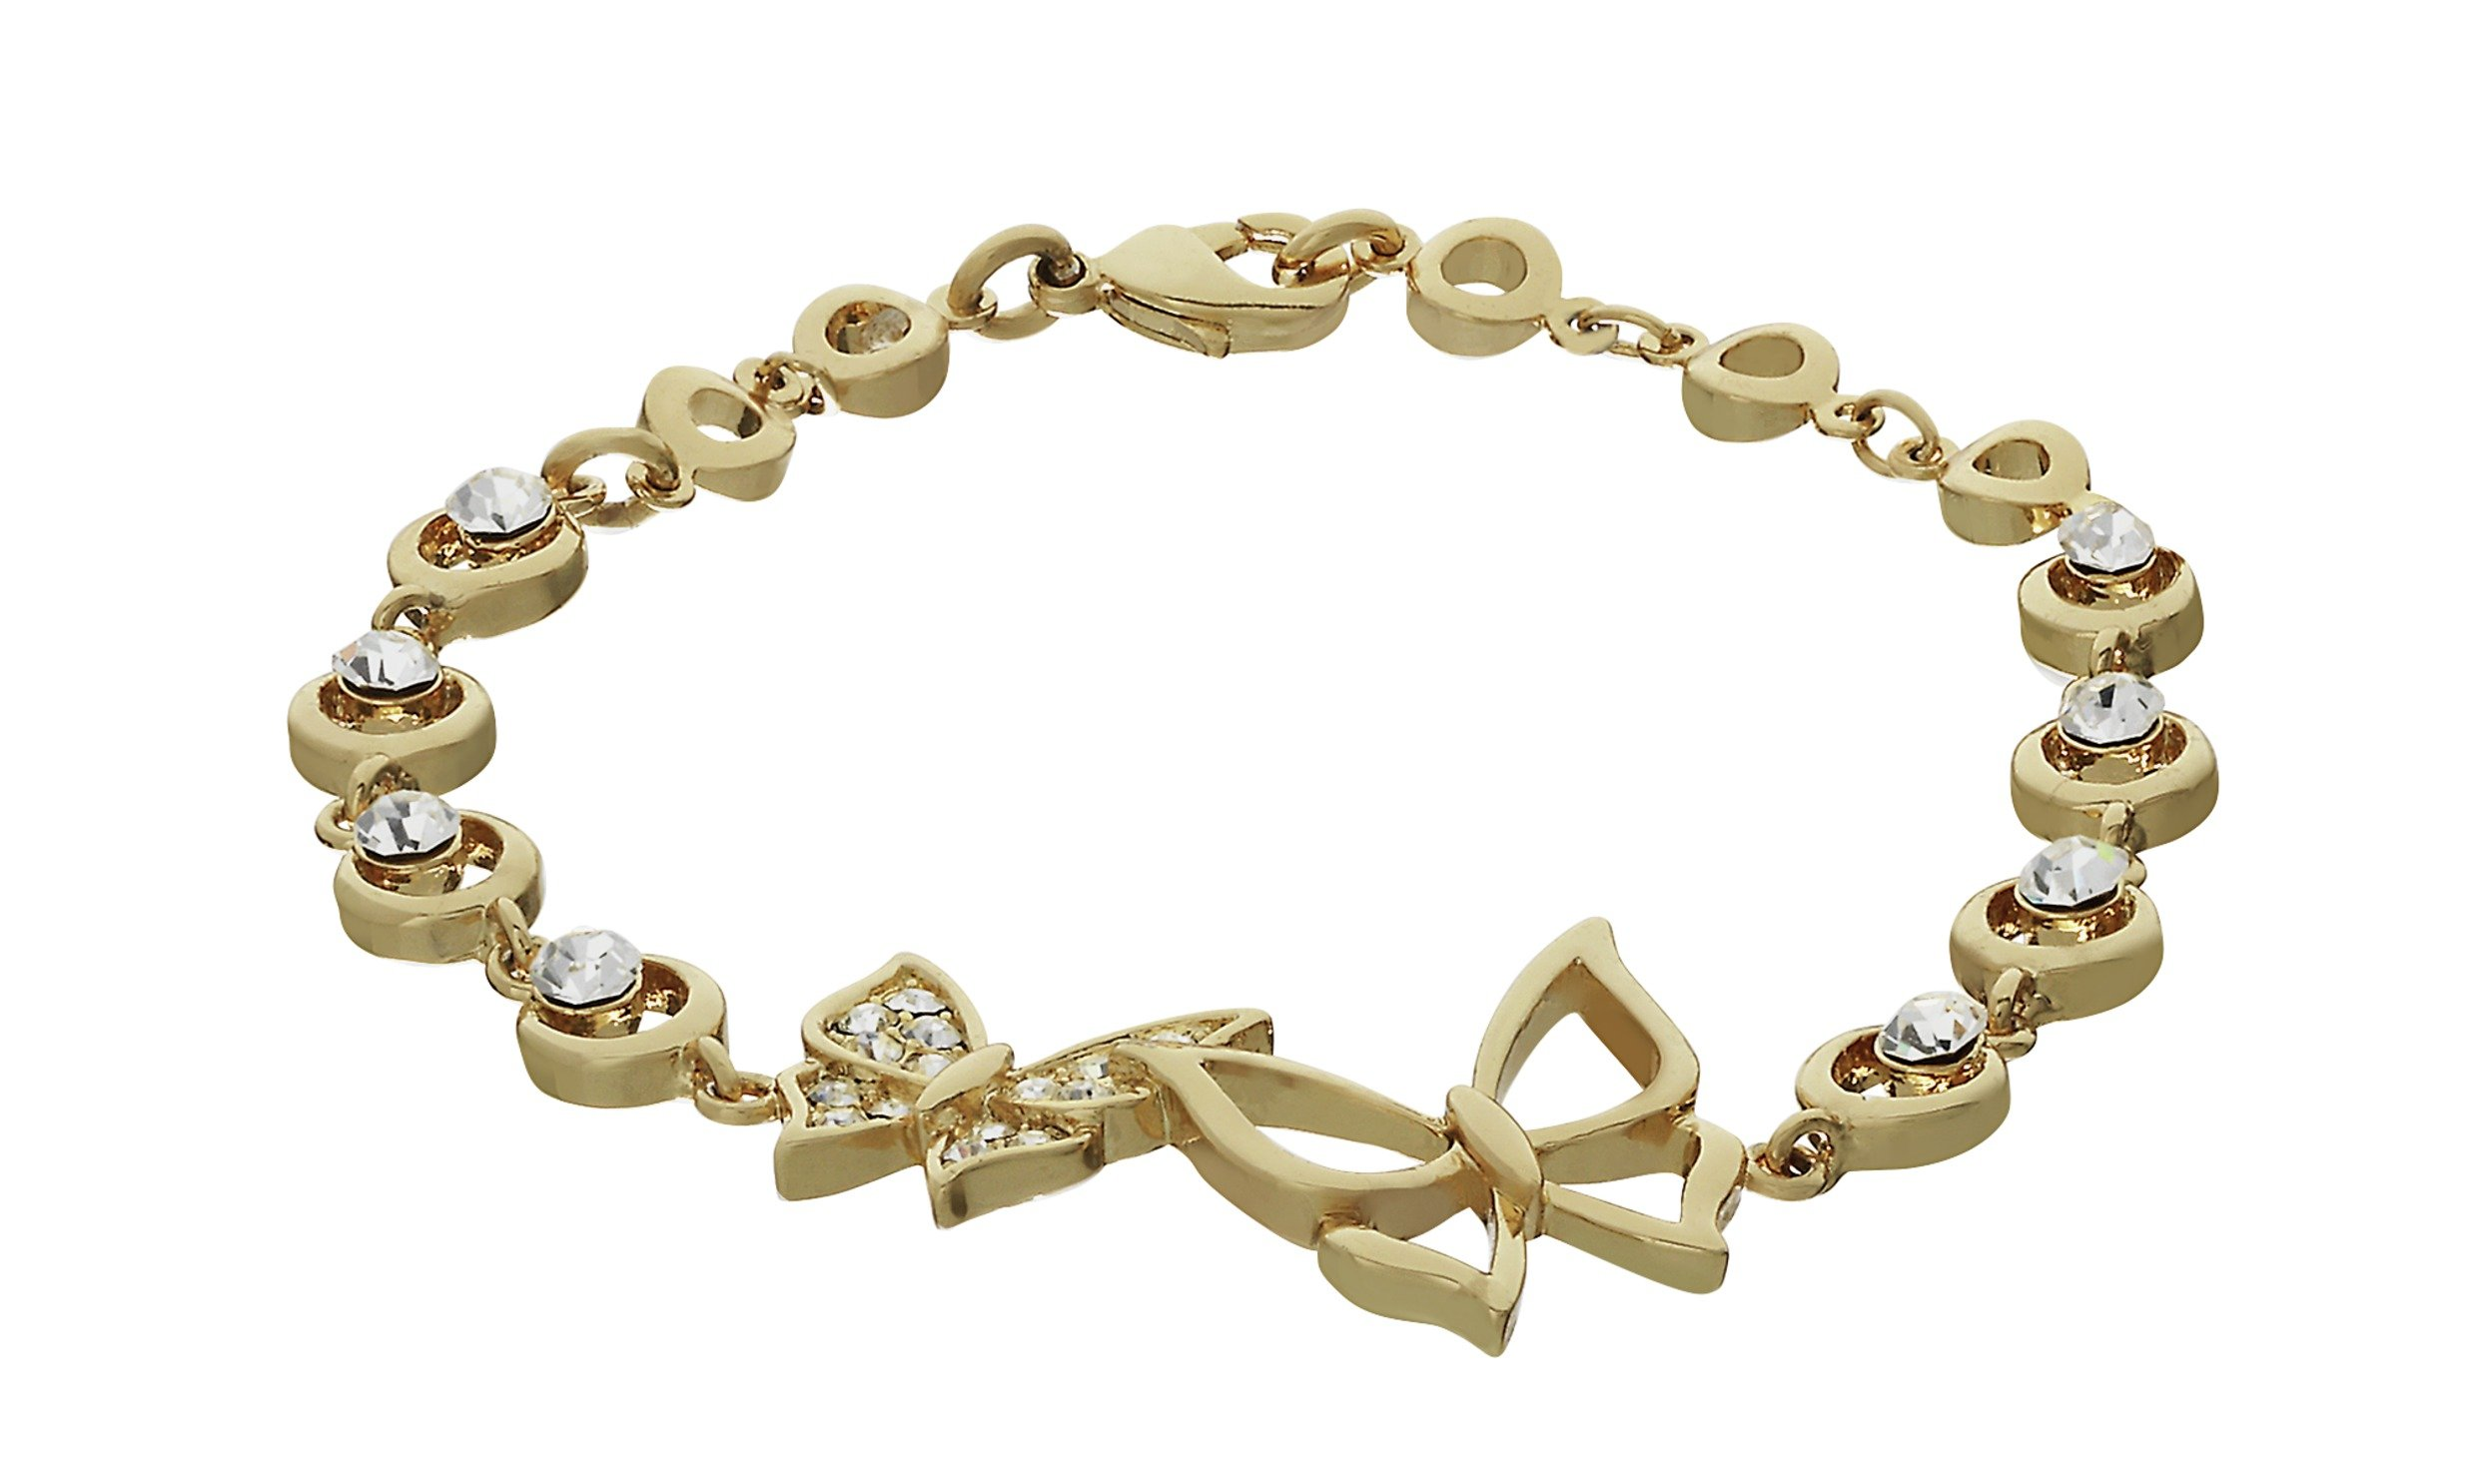 Image of 18 Carat Gold - Plated - Sterling Silver - Crystal Butterfly Bracelet.